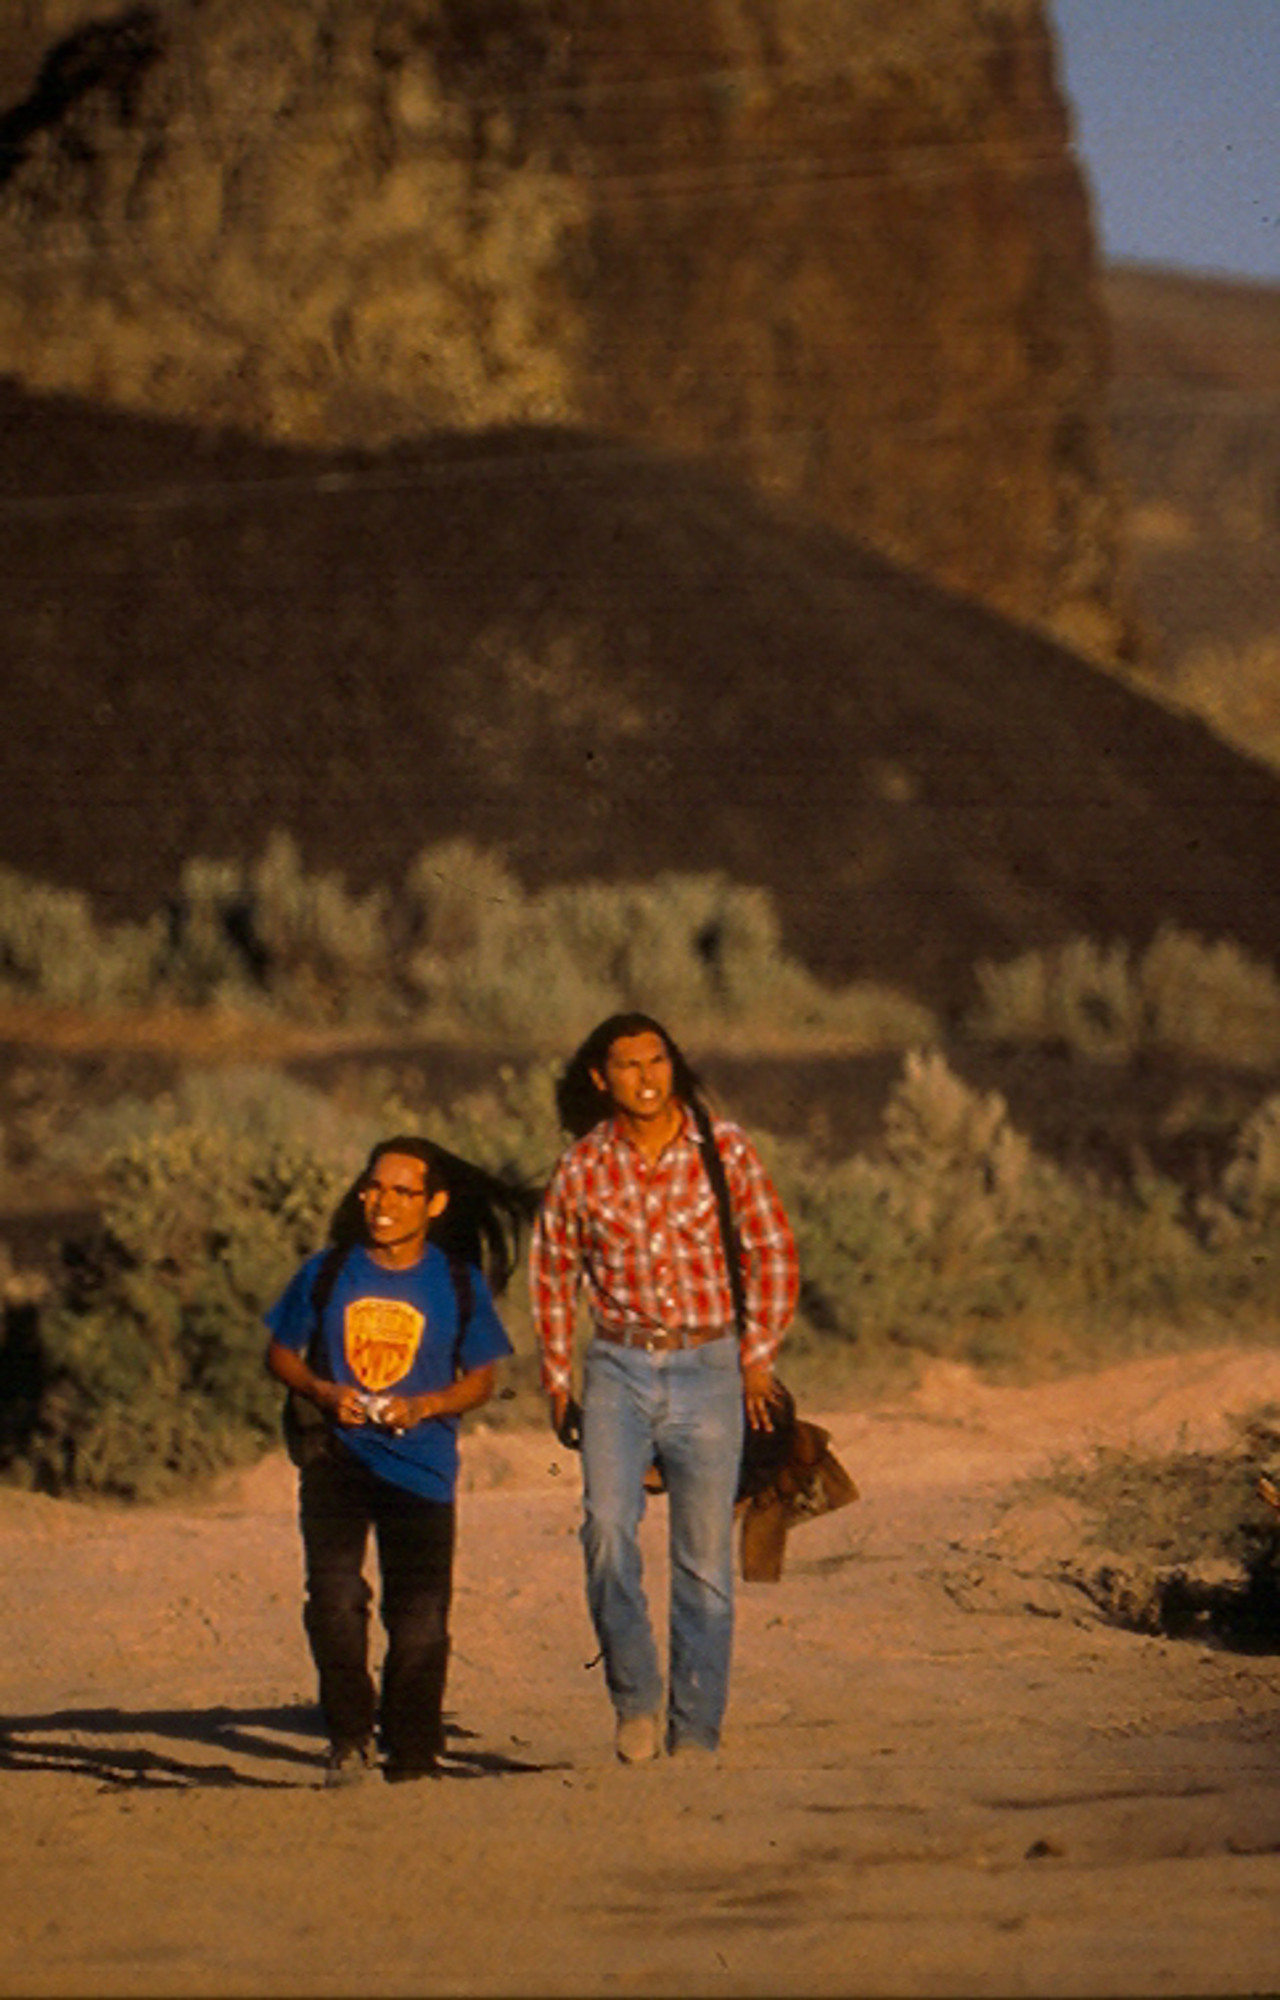 Smoke Signals. 1998. USA. Directed by Chris Eyre. 89 min. Courtesy of Eyre and Sundance institute